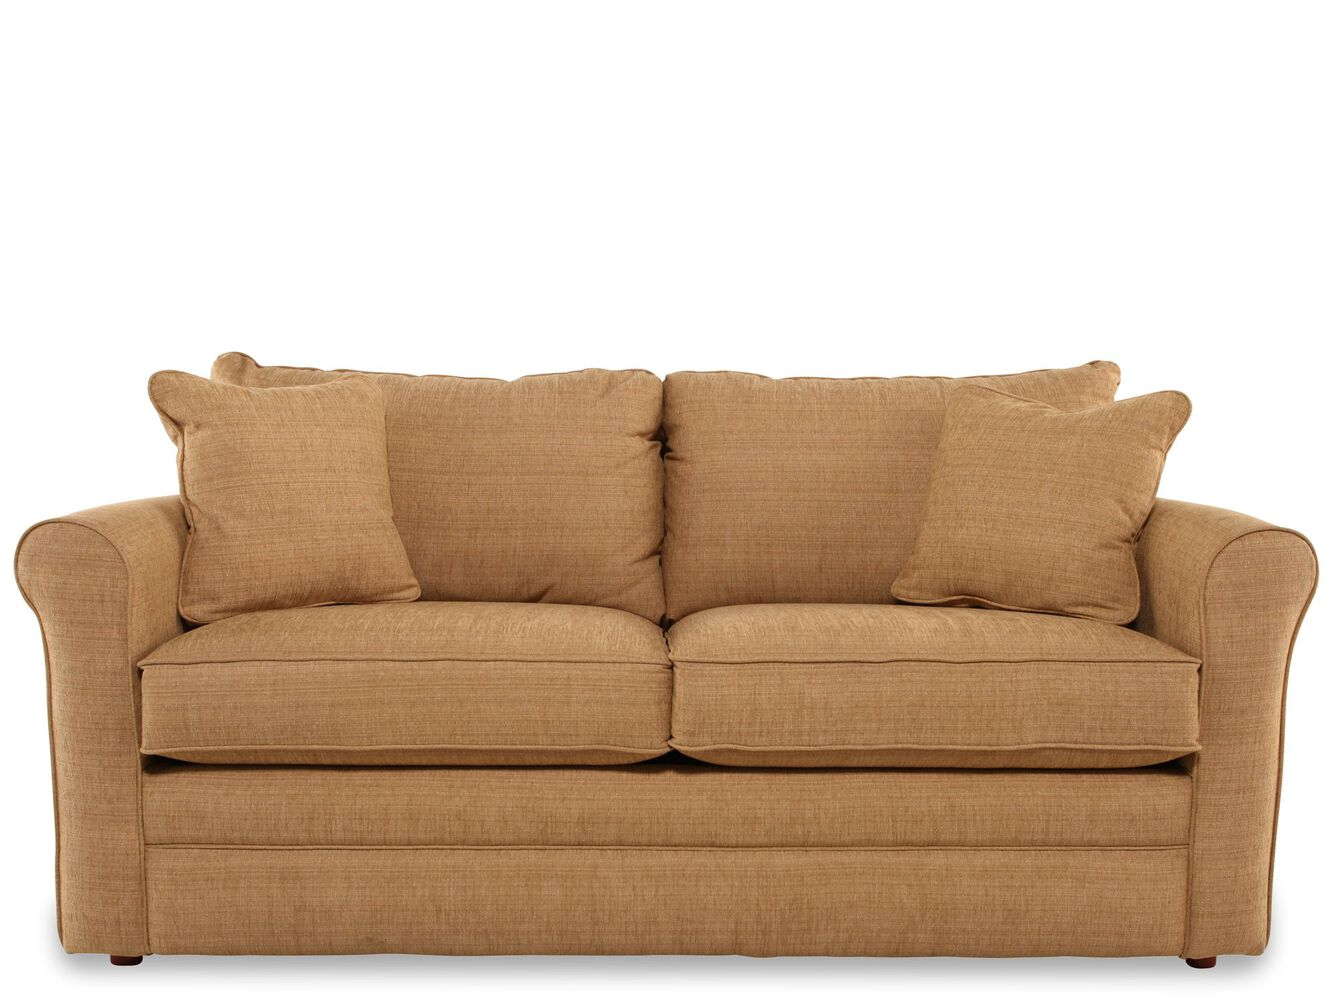 transitional 82 queen sleeper sofa in light brown mathis brothers furniture. Black Bedroom Furniture Sets. Home Design Ideas